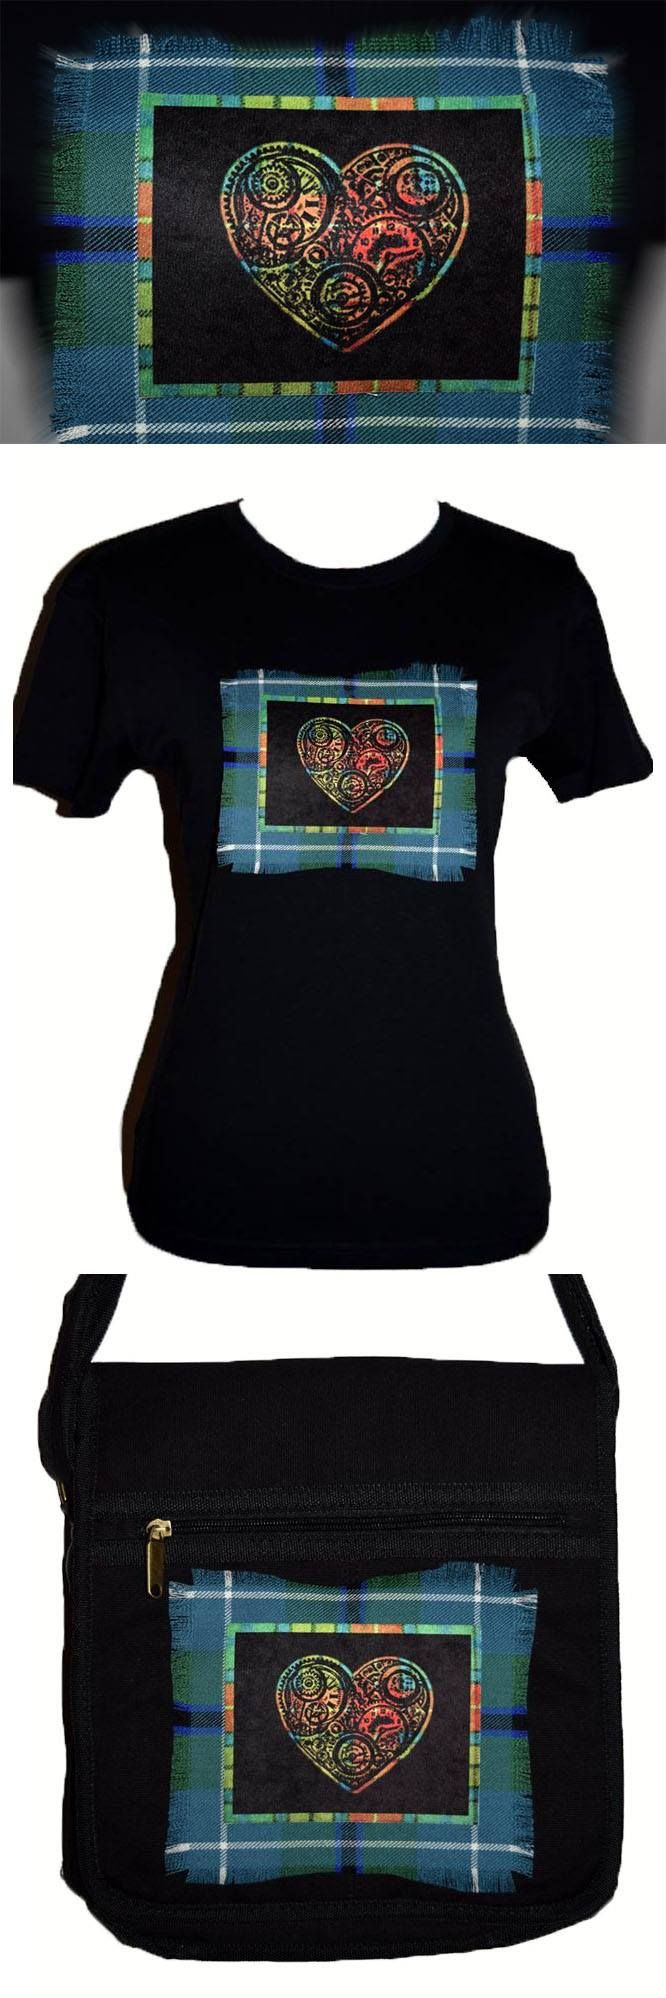 Steampunk heart custom made shirt and bag. Stunning sublimation prints onto luxurious velvet fabric and beautiful tartan. Hand made in Scotland by MoNkA. https://www.facebook.com/monka.rocks/